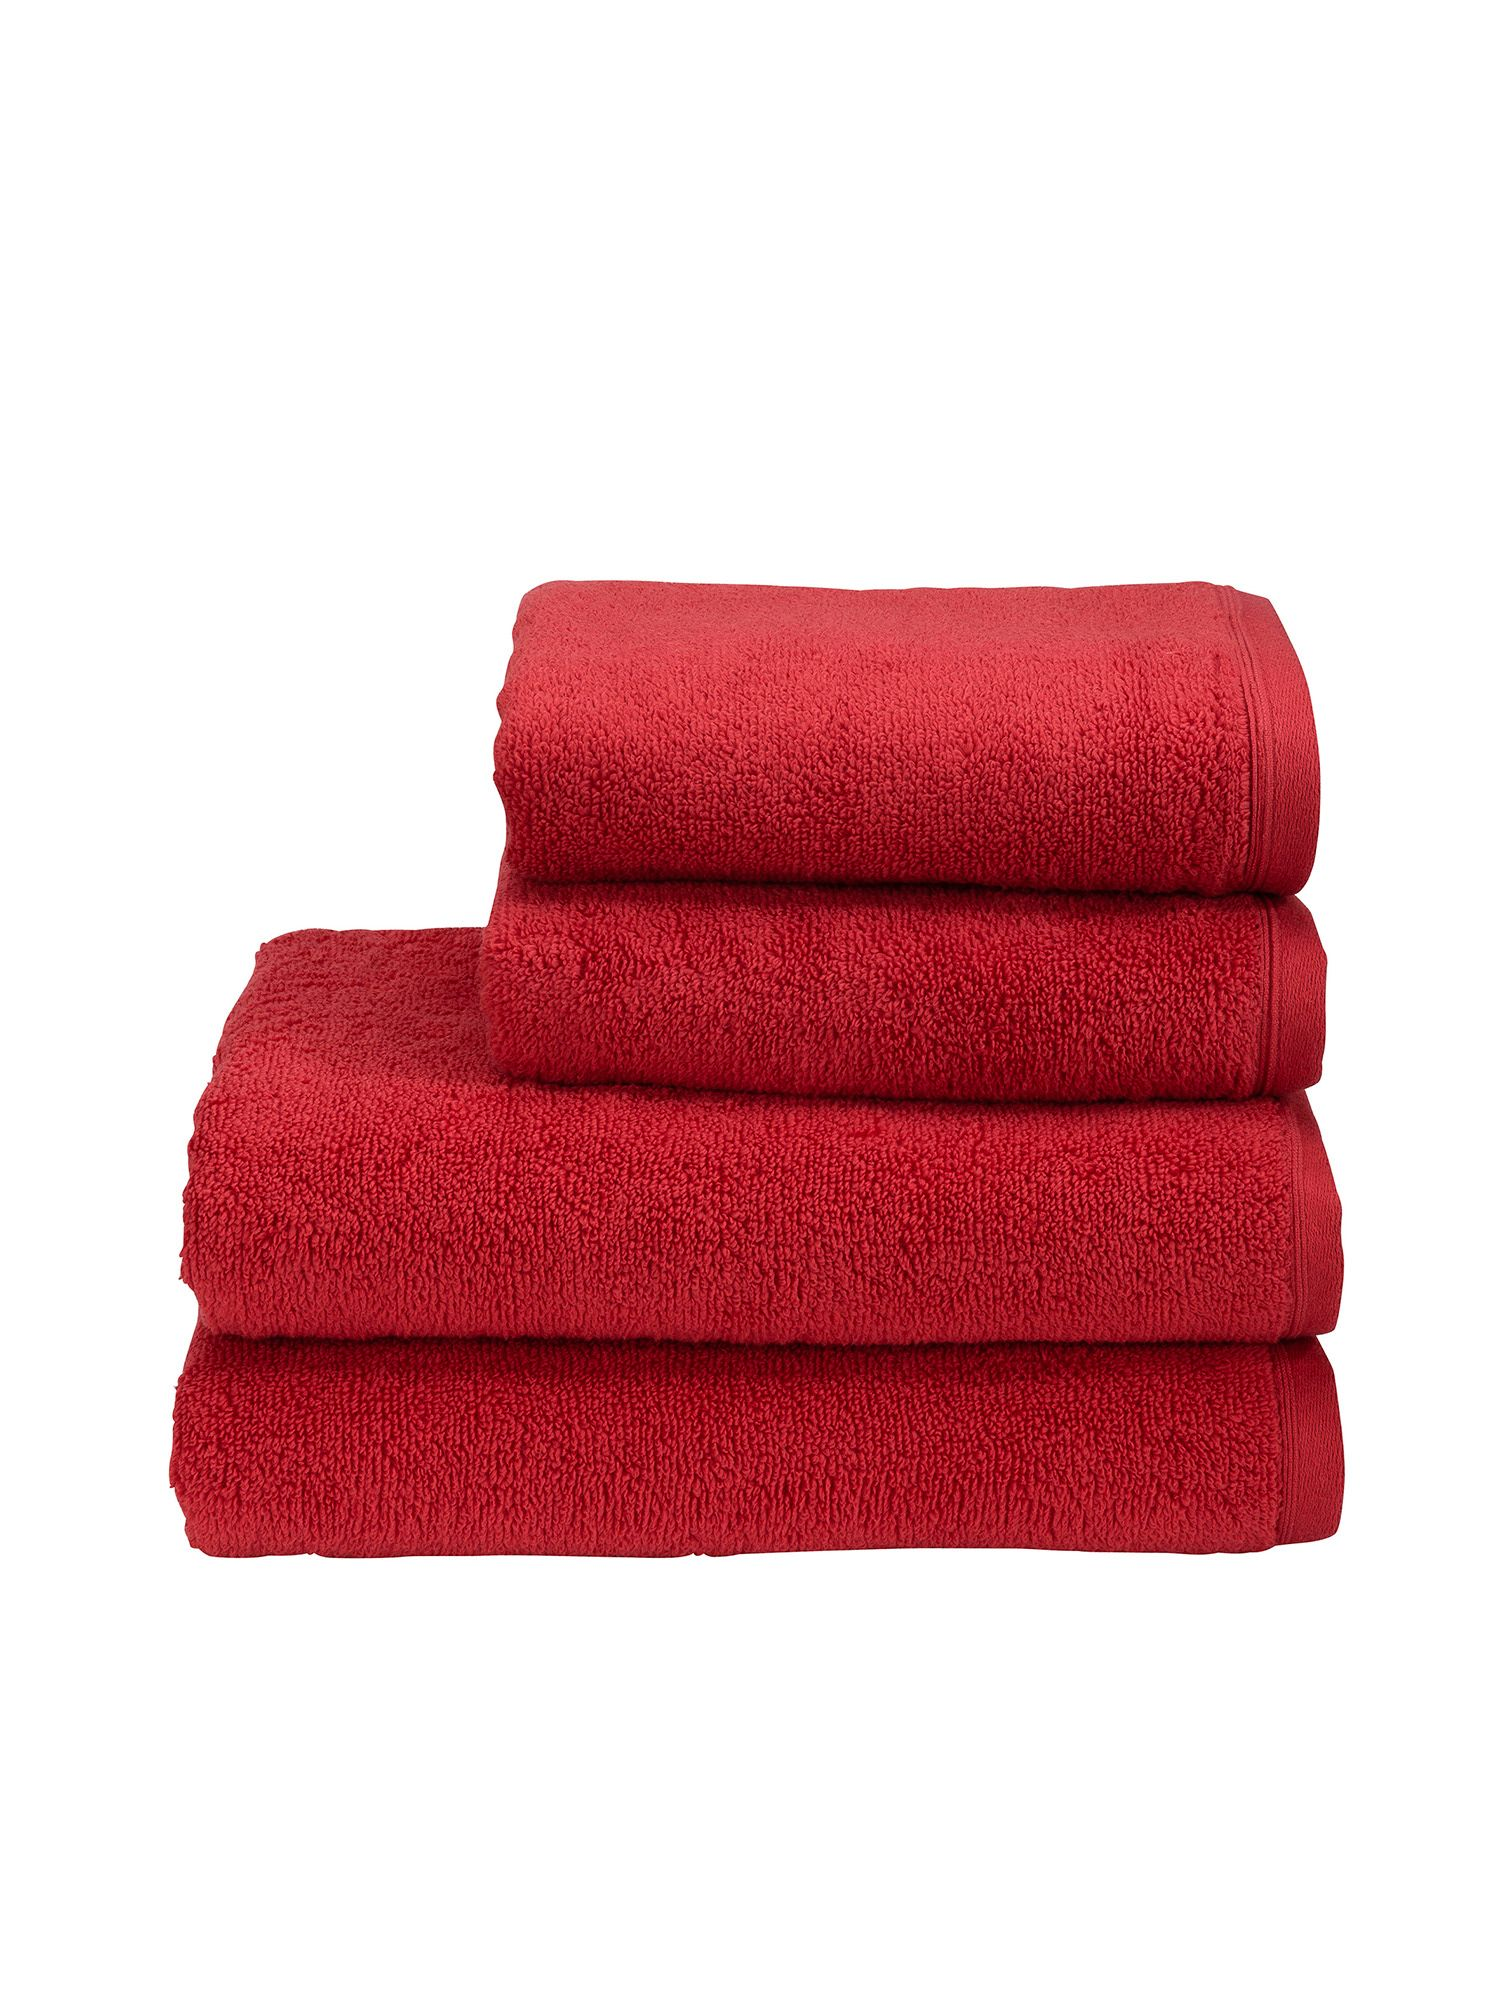 Revive bath towels pillar box